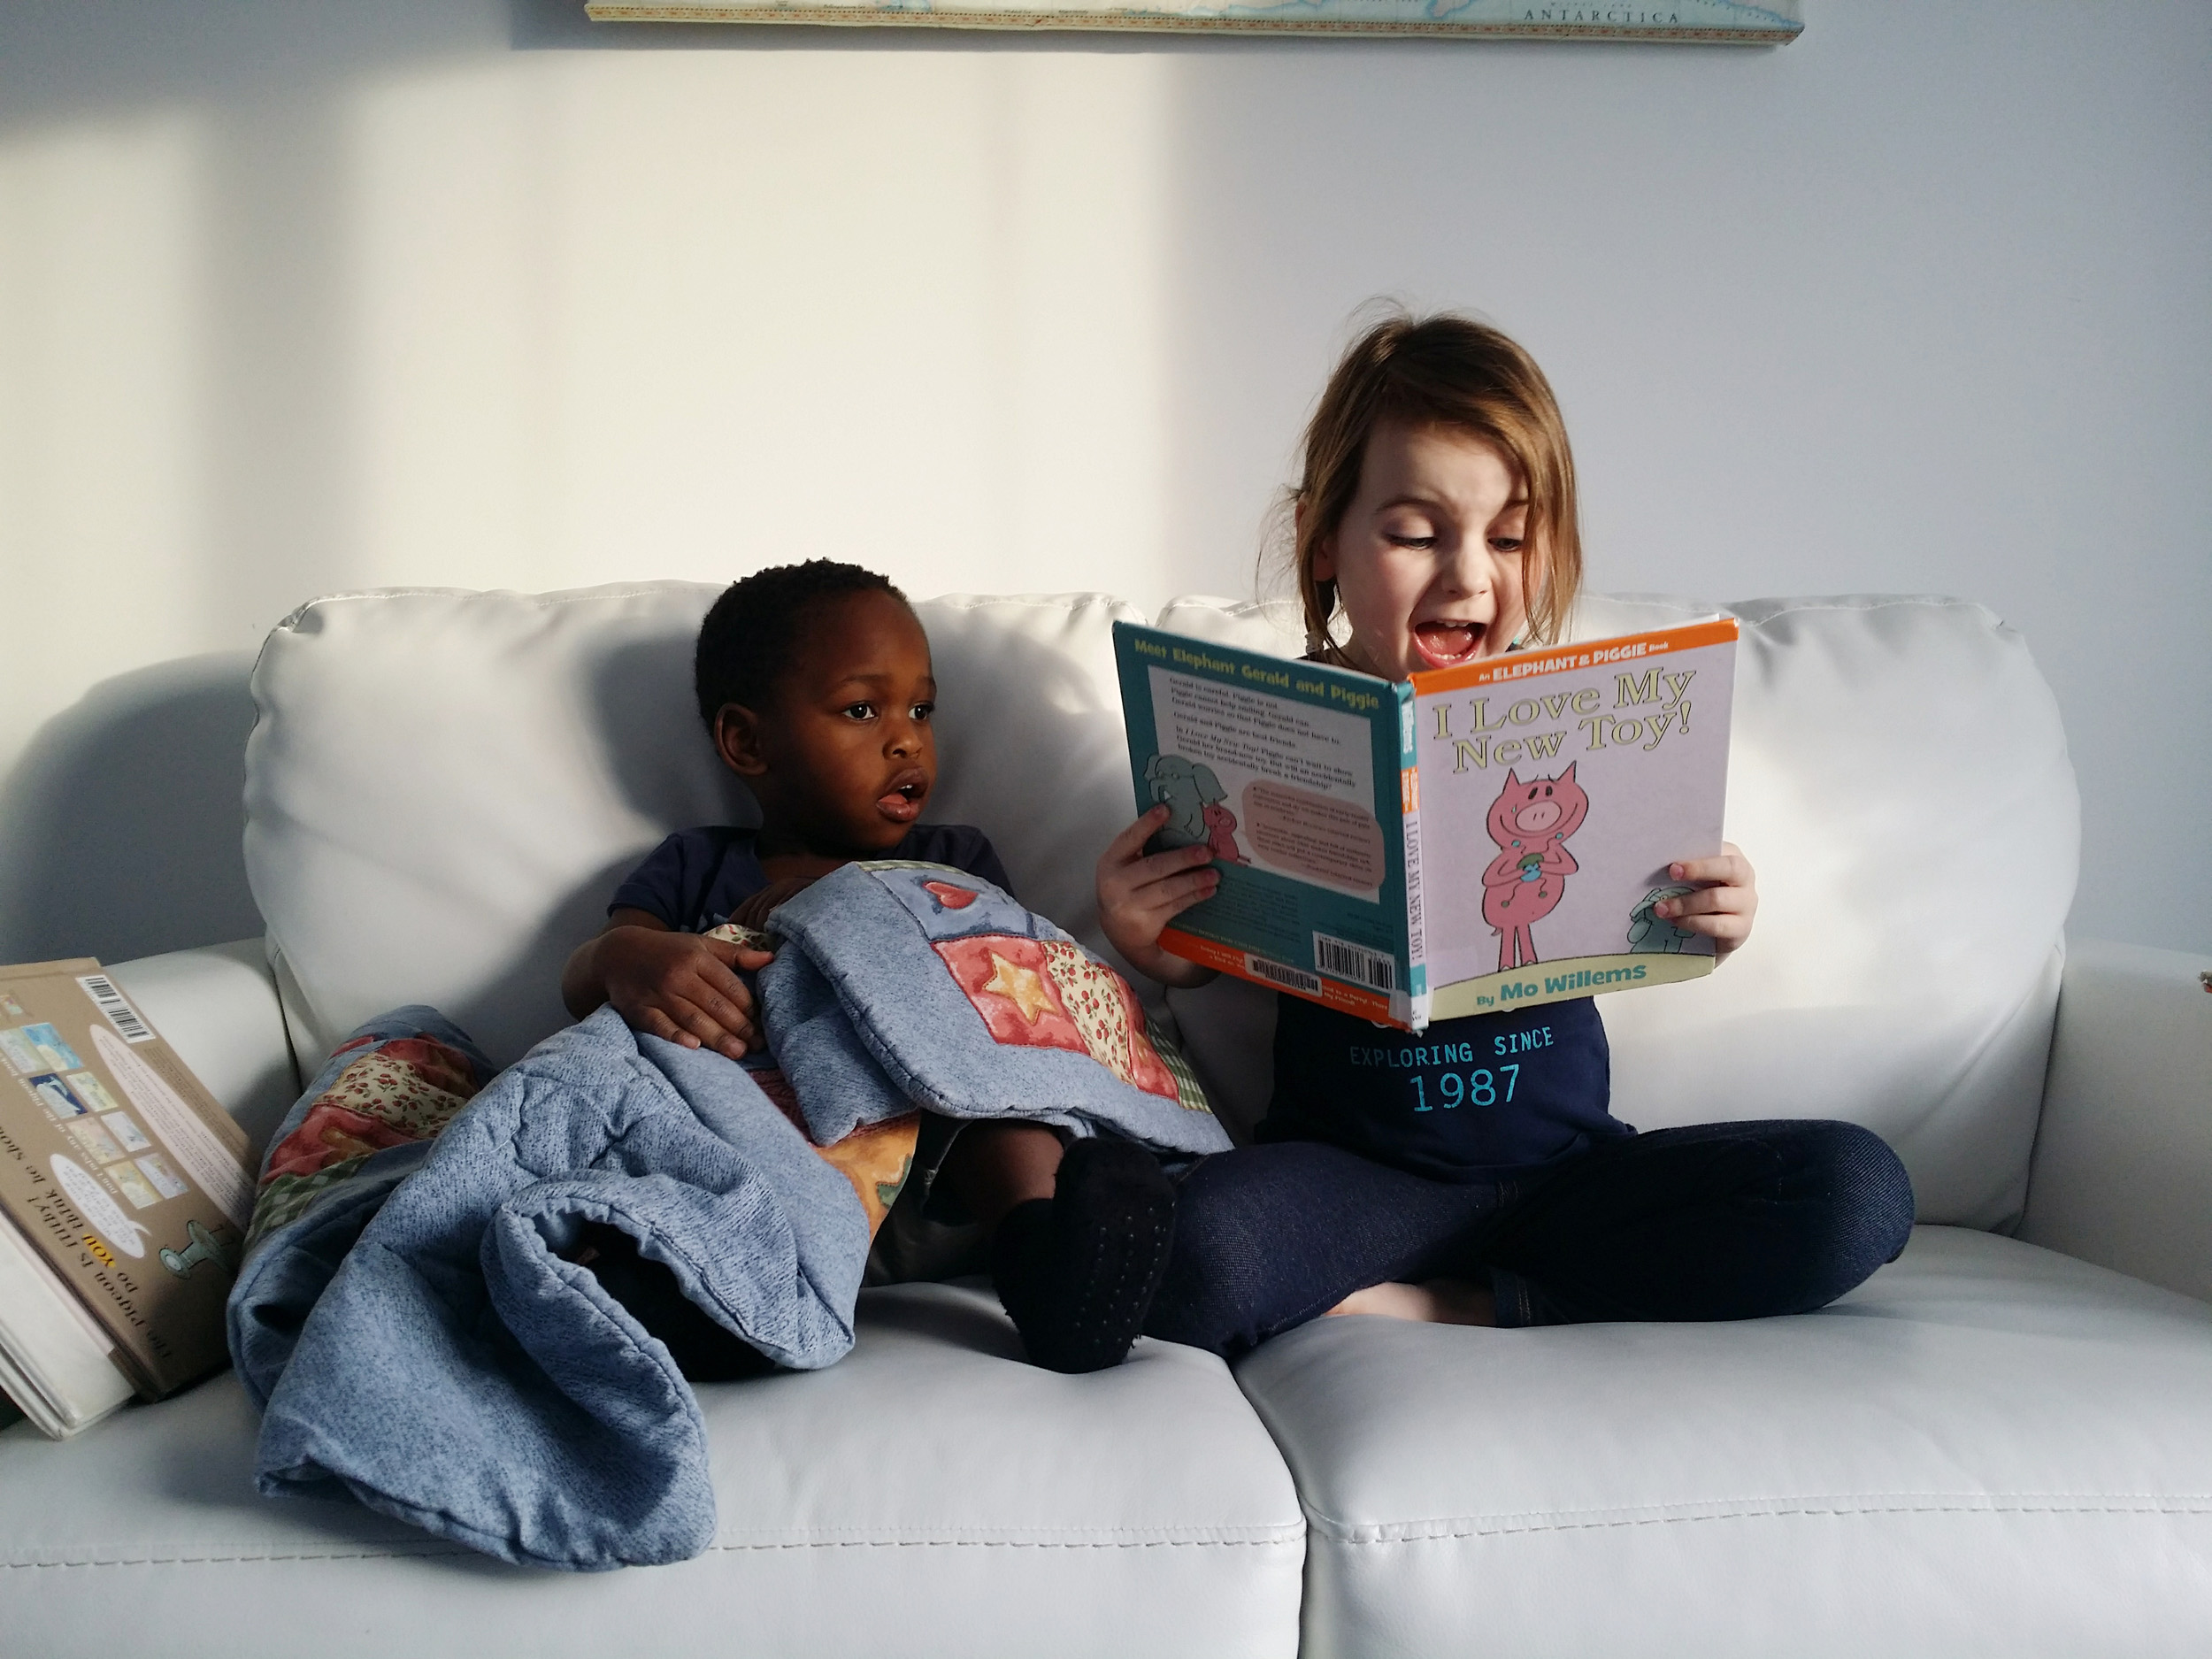 How I taught my daughter to read - I thought it would be impossible to teach reading but it ended up being a fairly simple process, here's what we did.